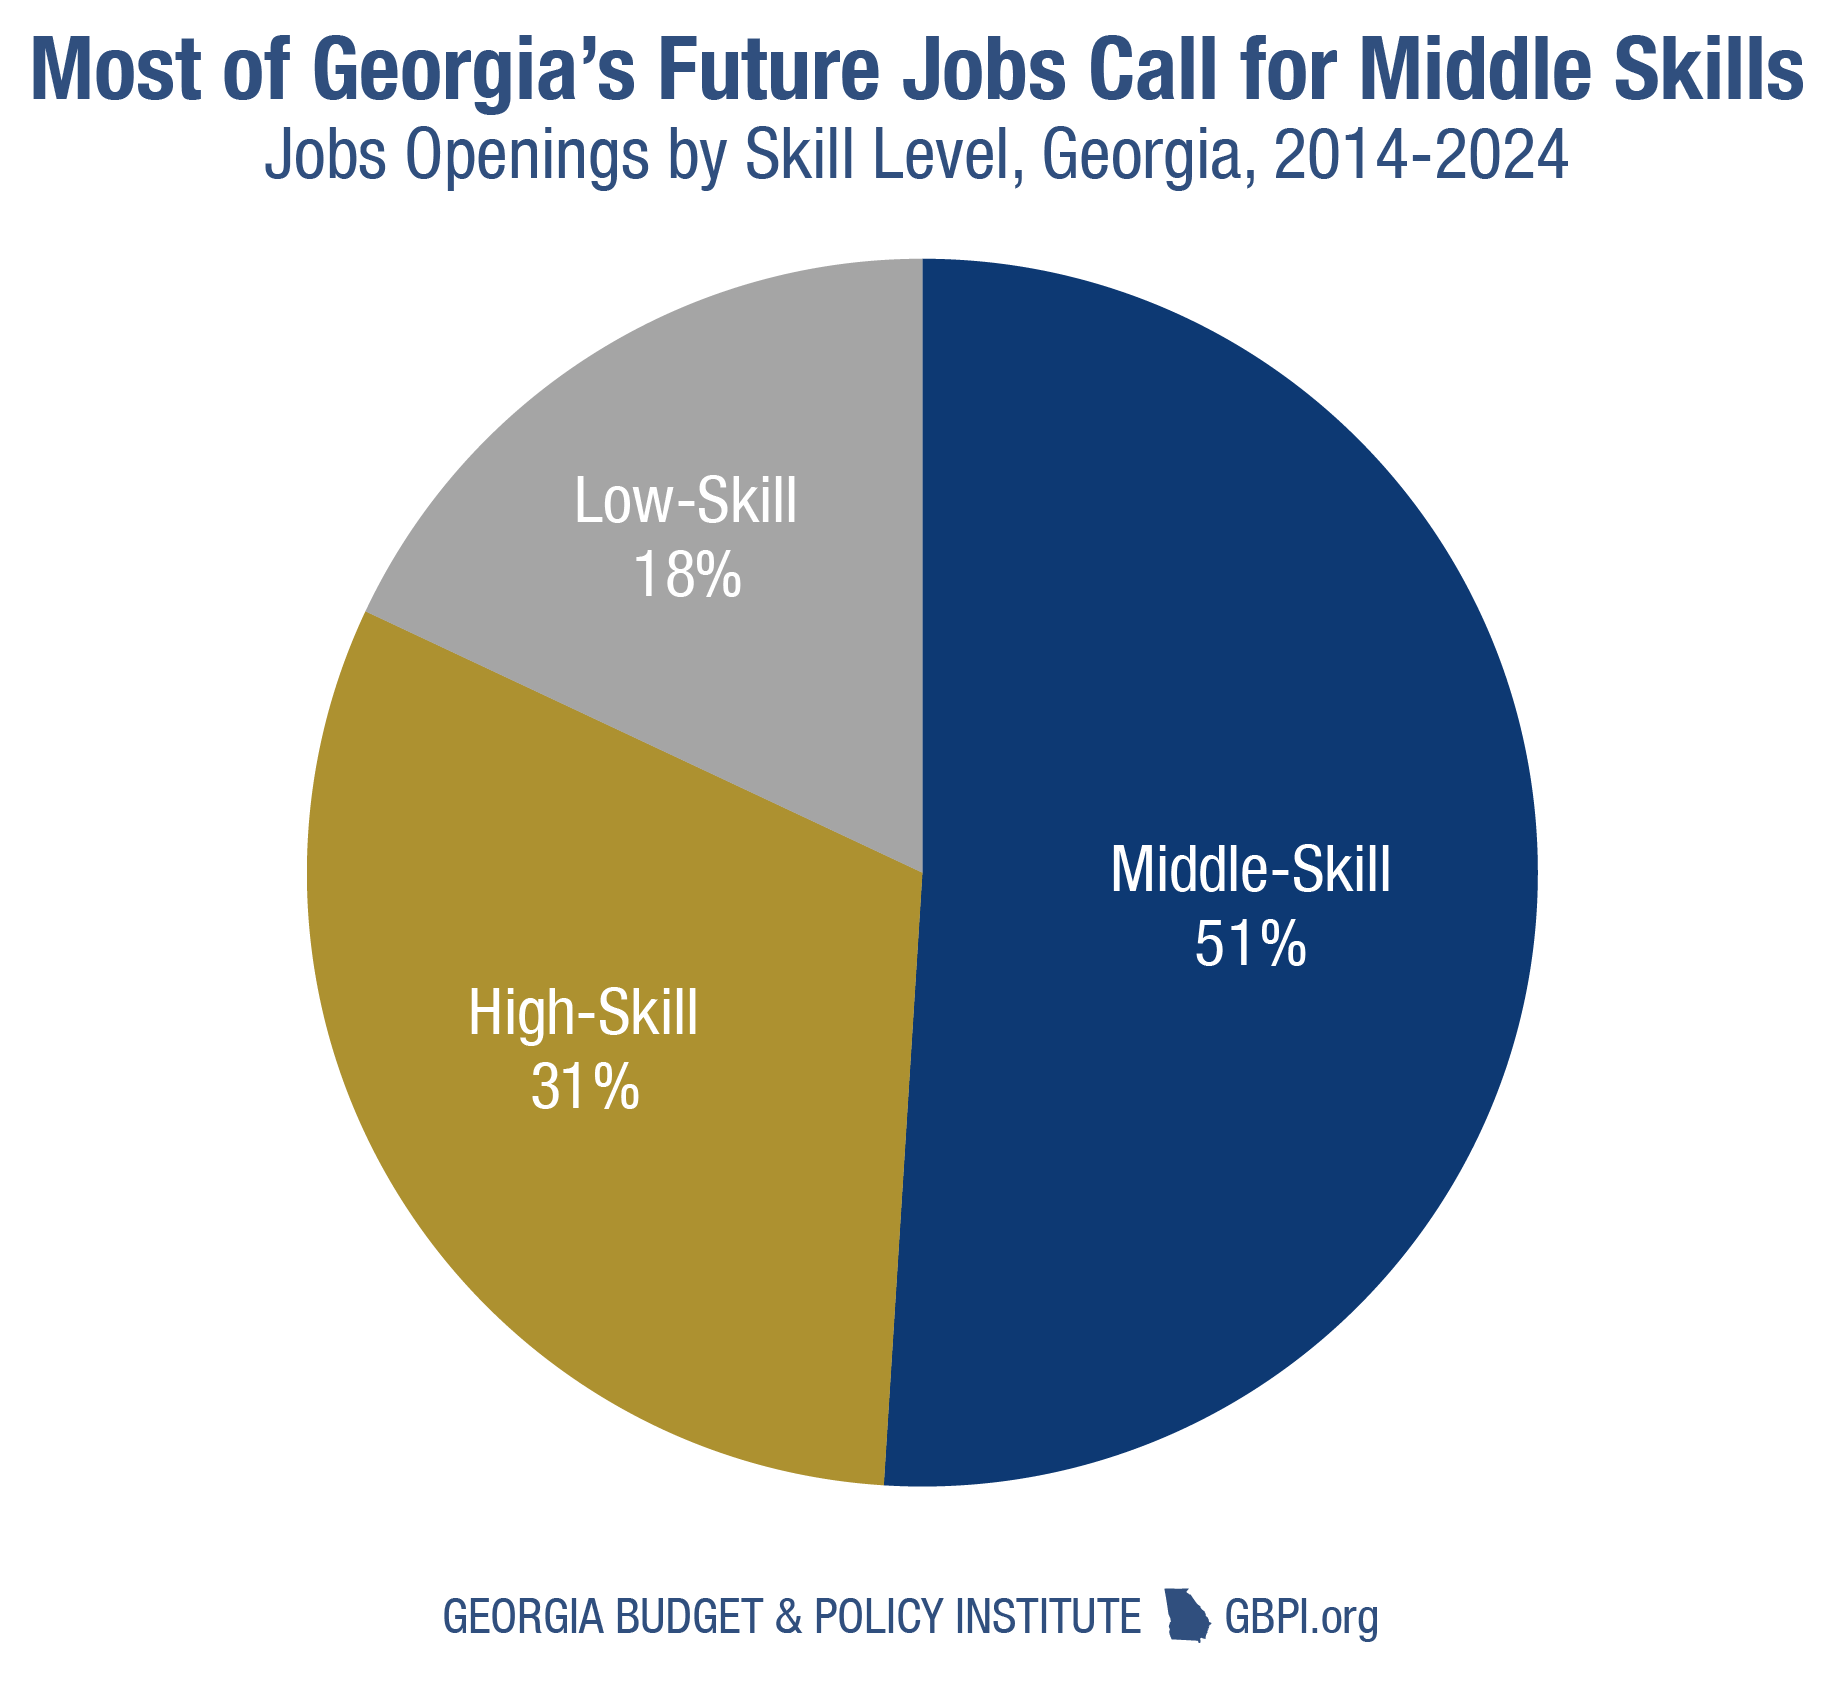 Boost georgias workforce with affordable child care for student source national skills coalition analysis of long term occupational projections from georgia department of labor xflitez Choice Image